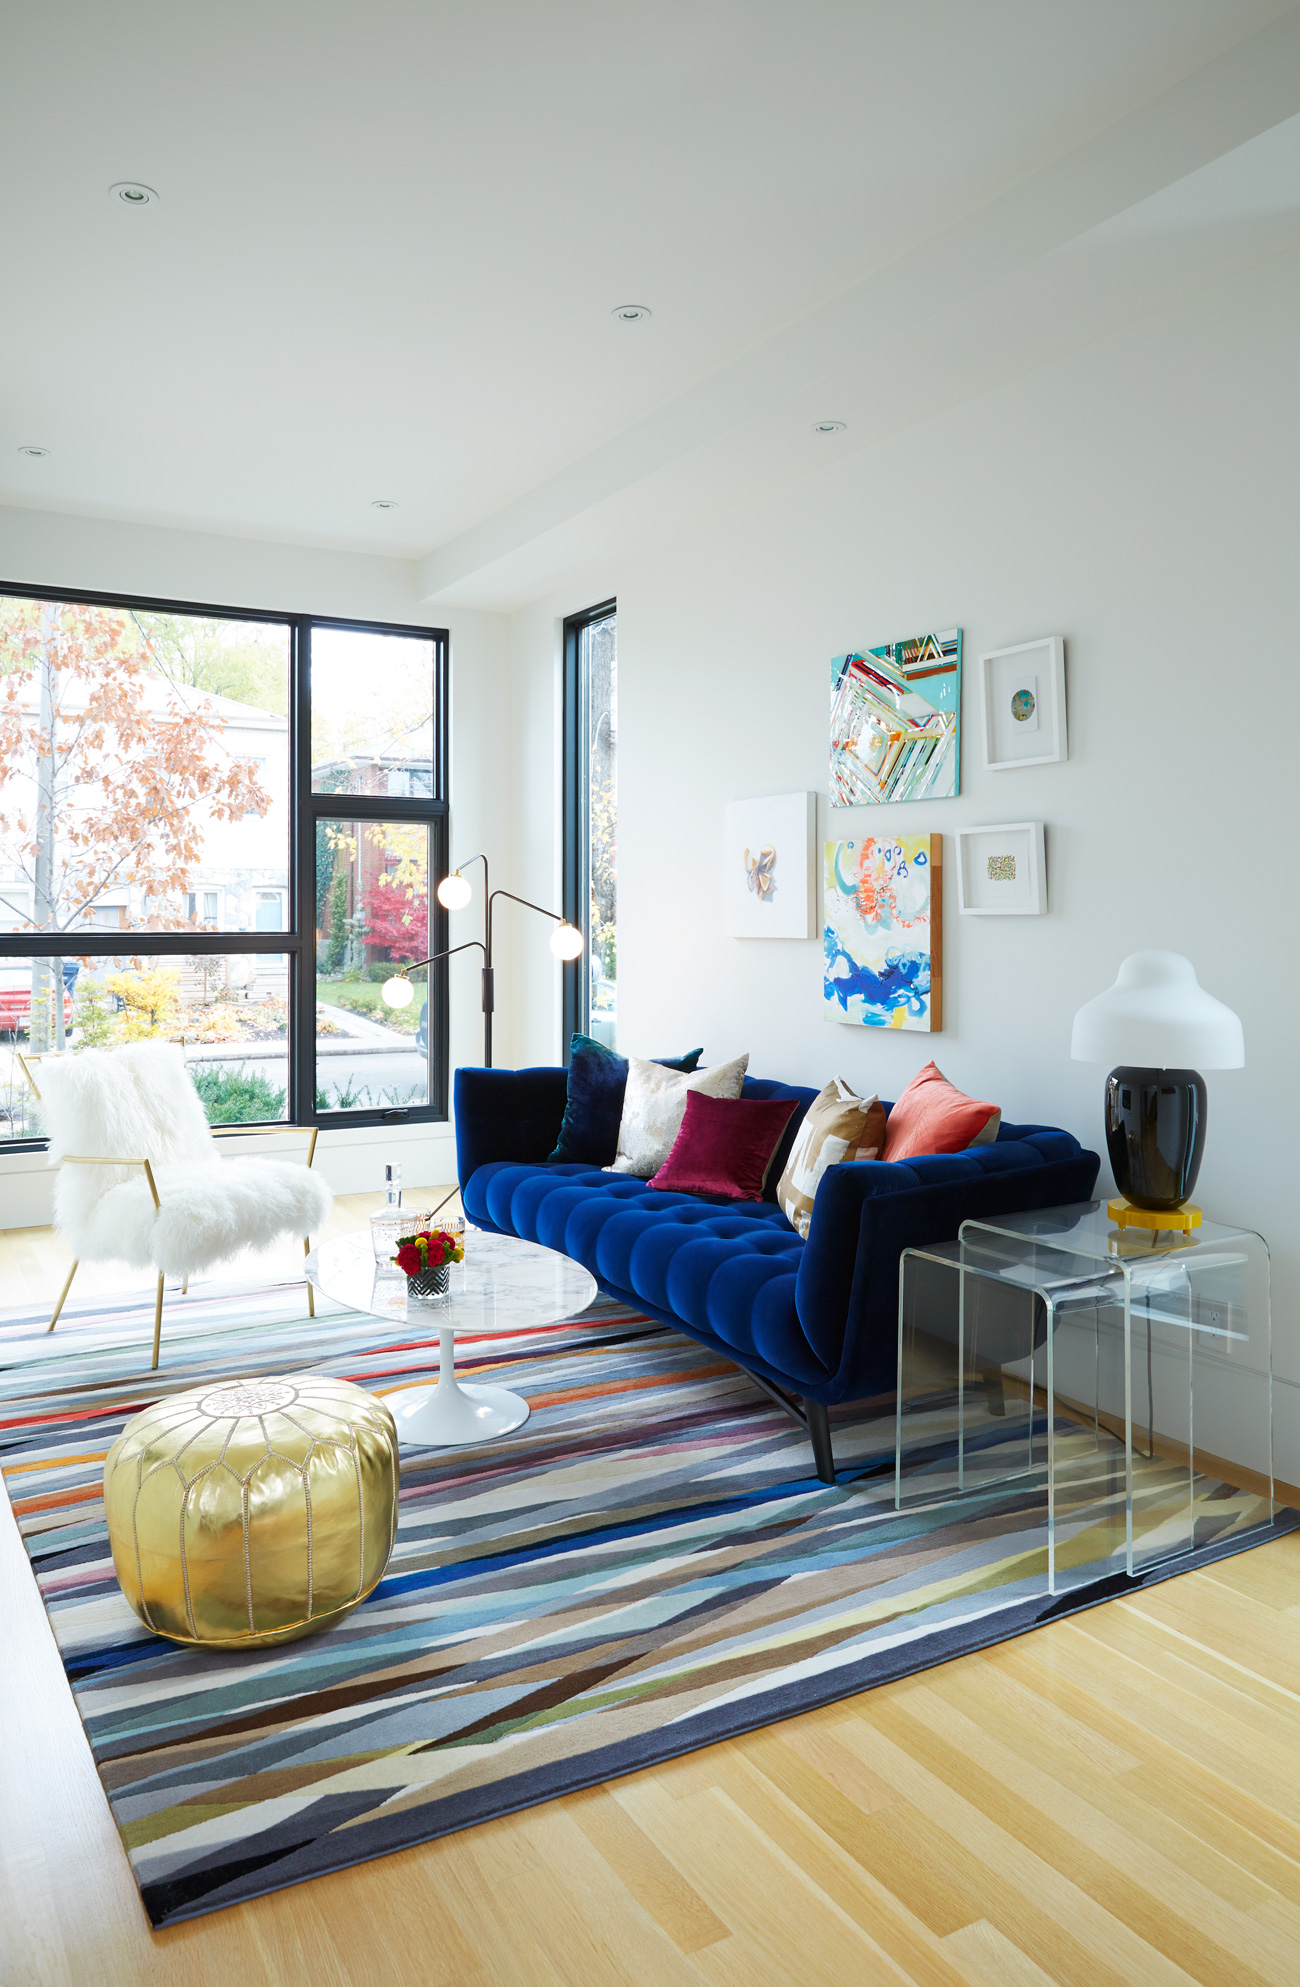 A grid of front windows frames the street. In the salon-style living room: rug and floor lamp from Avenue Road; table lamp from Lightform; chair, pouf and pillows from Elte; sofa by Roche Bobois; art from Art Interiors.